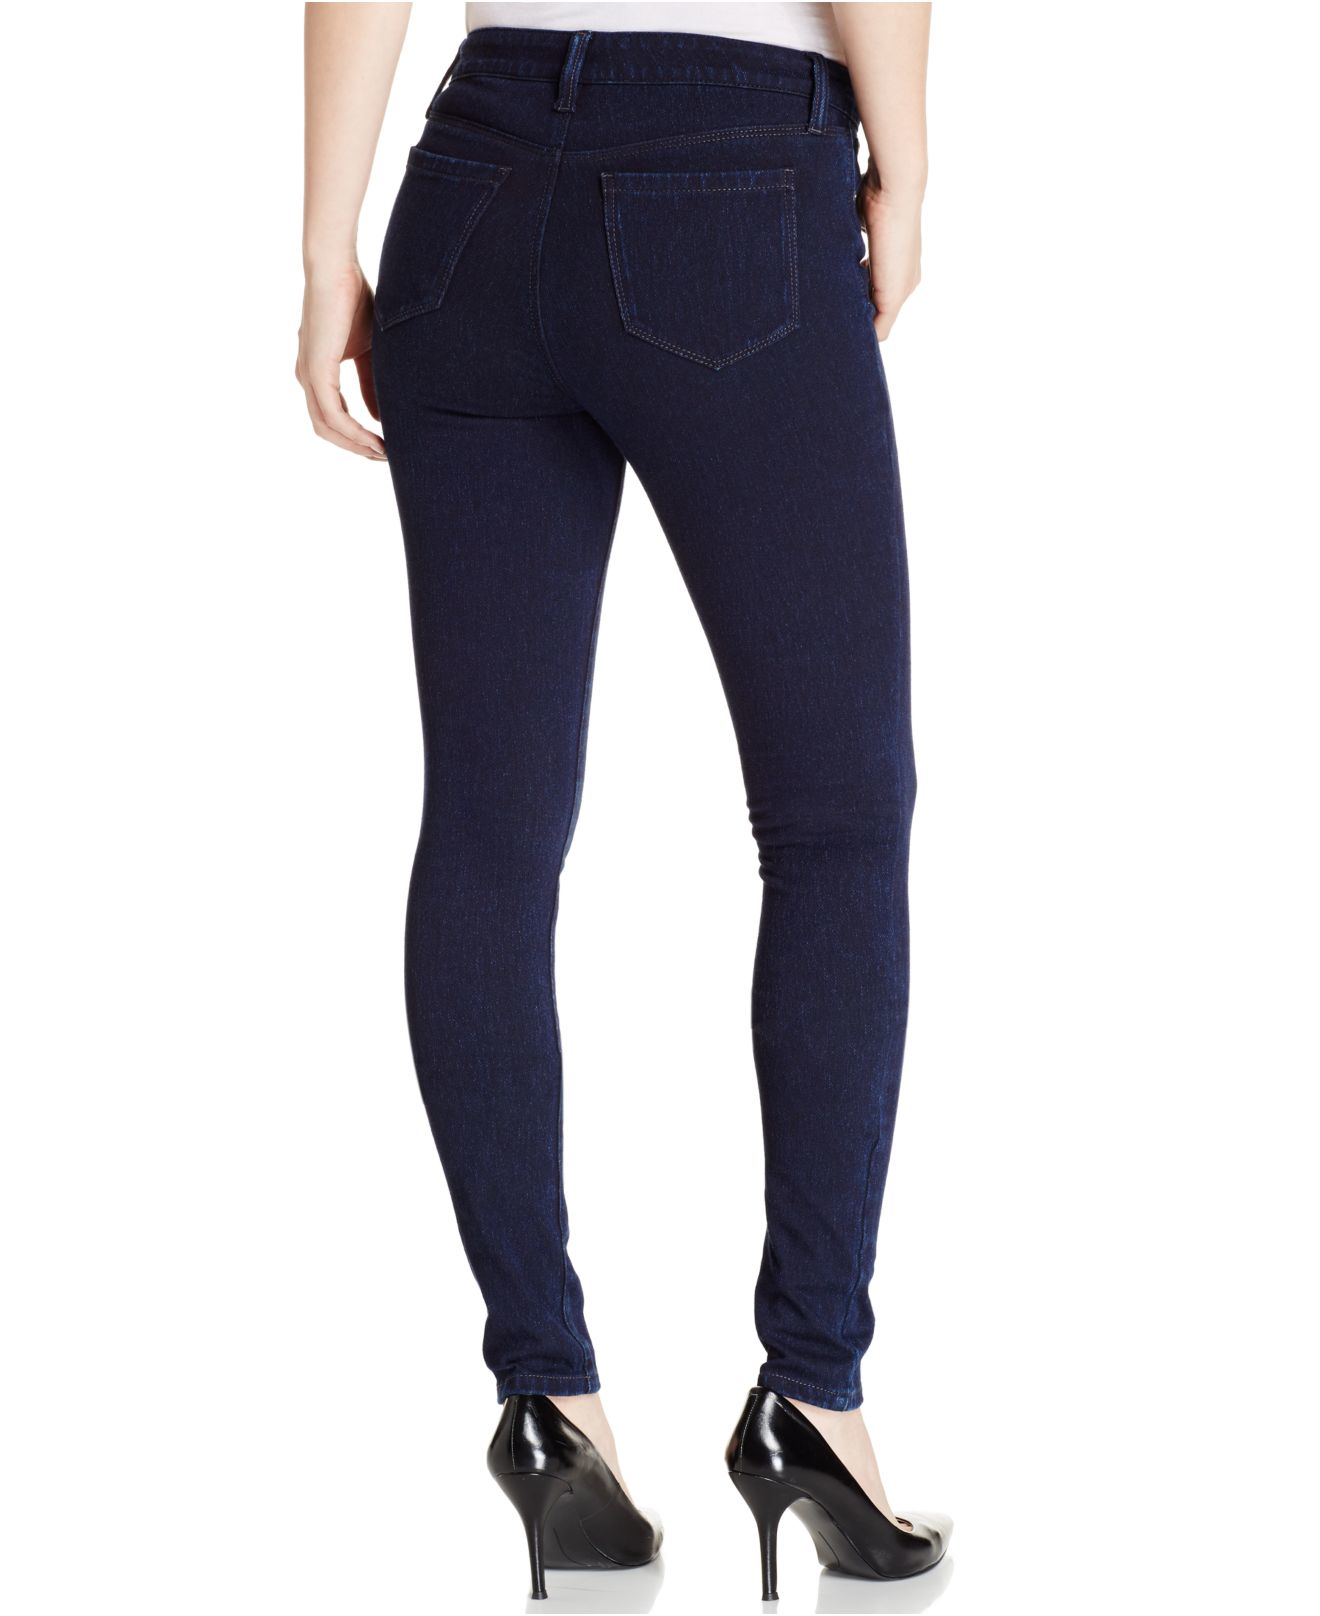 Style & co. Petite Knit Jeggings in Blue